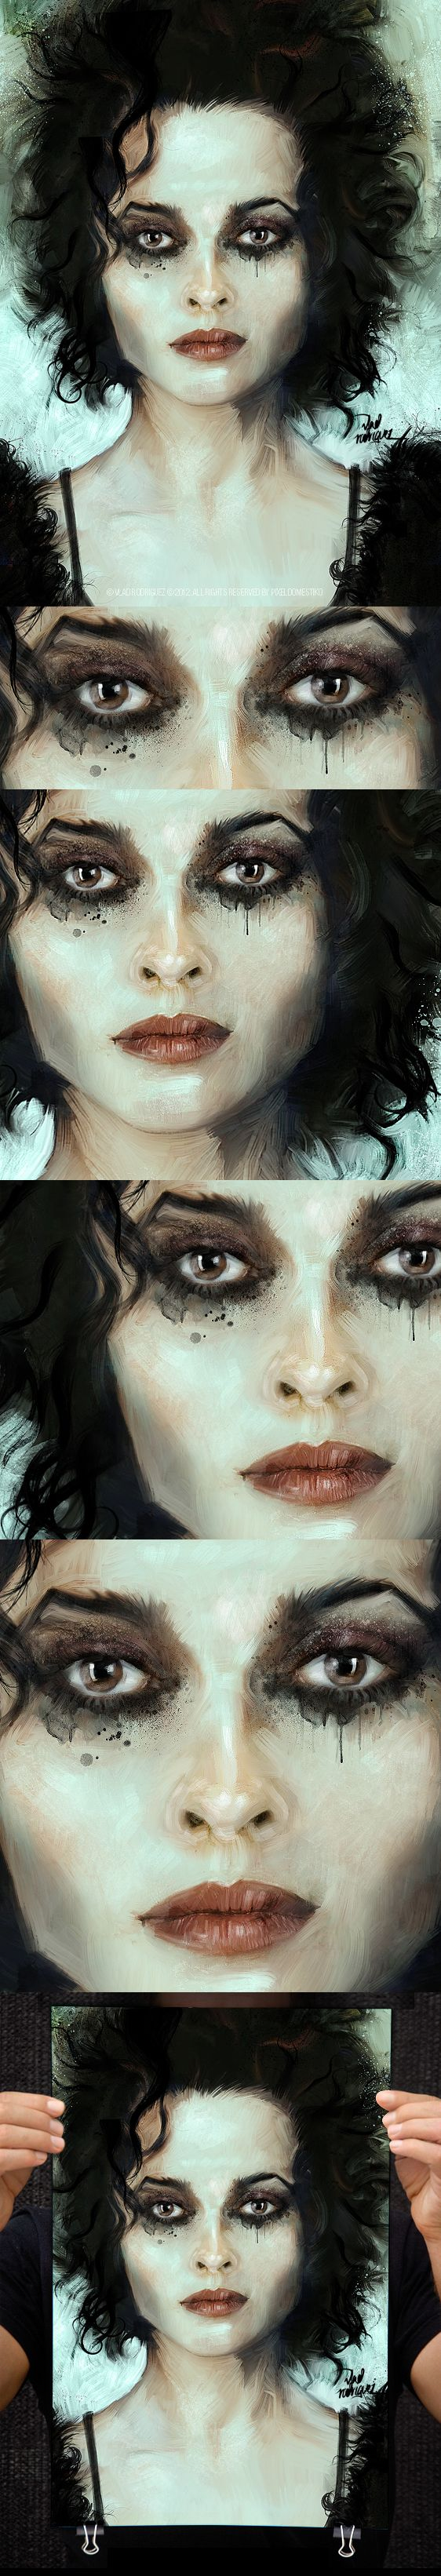 In the Fight Club! with Helena Bonham (Marla Singer), by Vlad Rodriguez